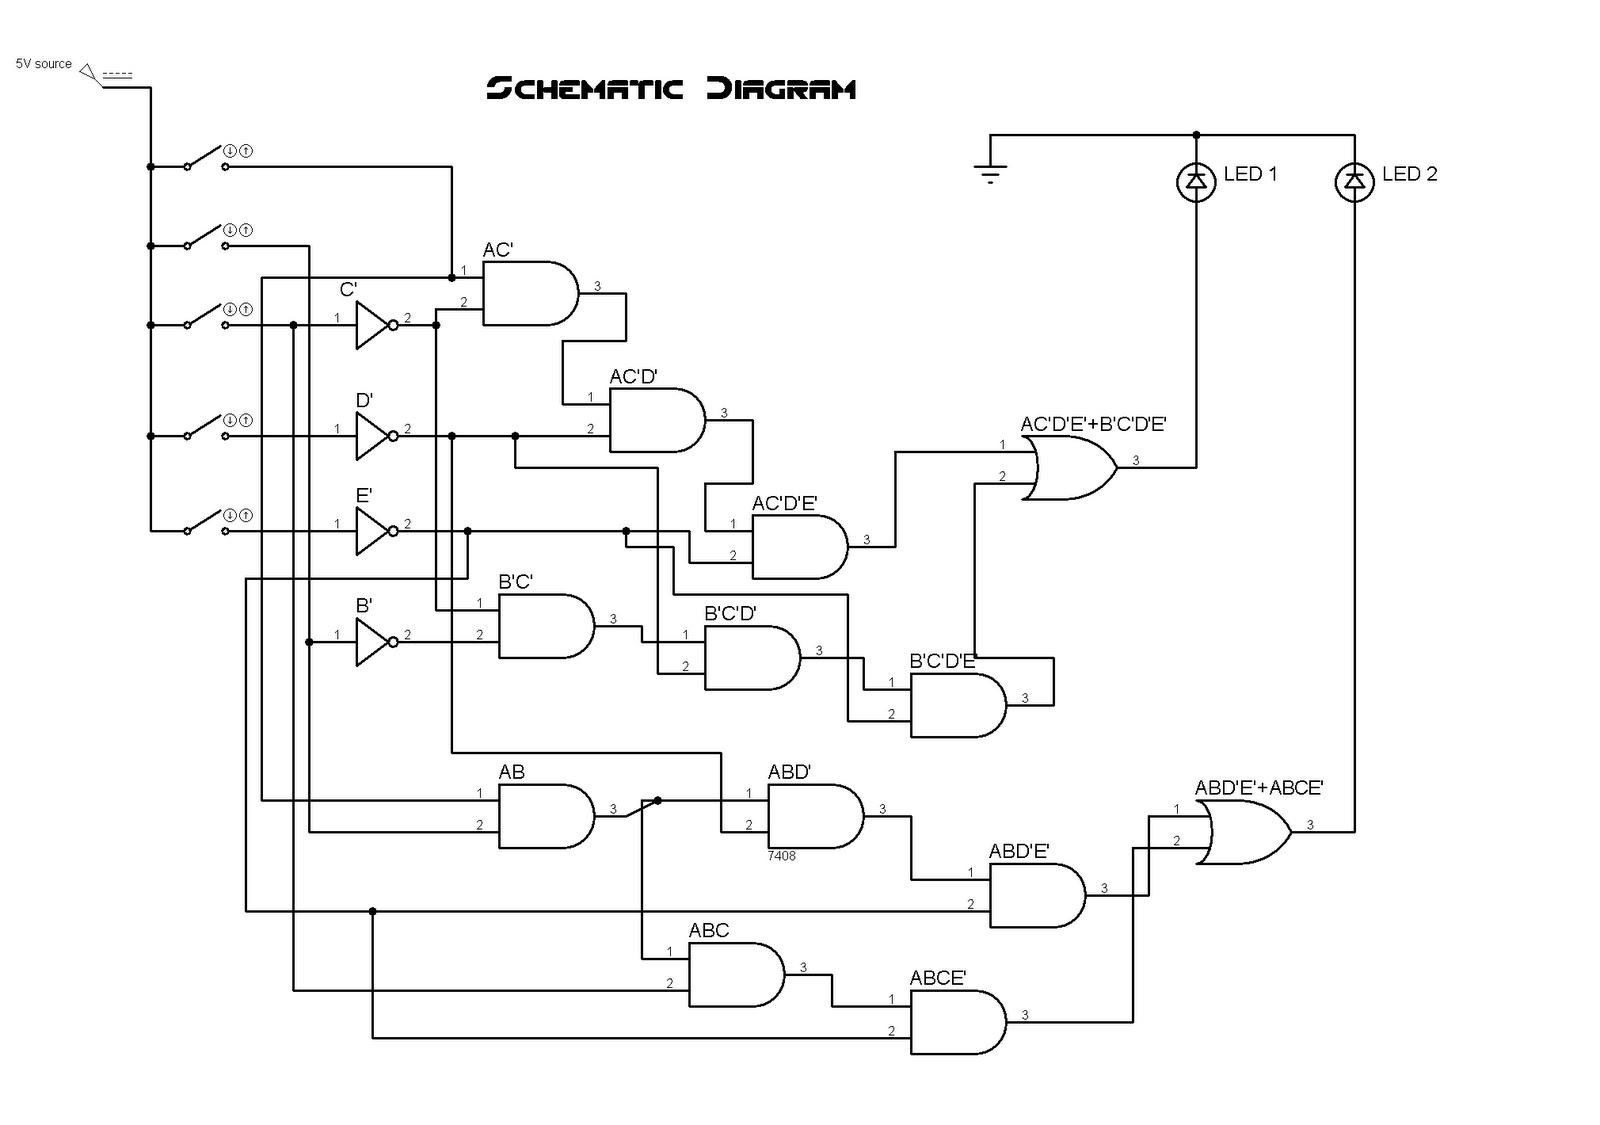 Results Page 20 About Servo Motor Searching Circuits At Schematic Diagram Of Circuit Our